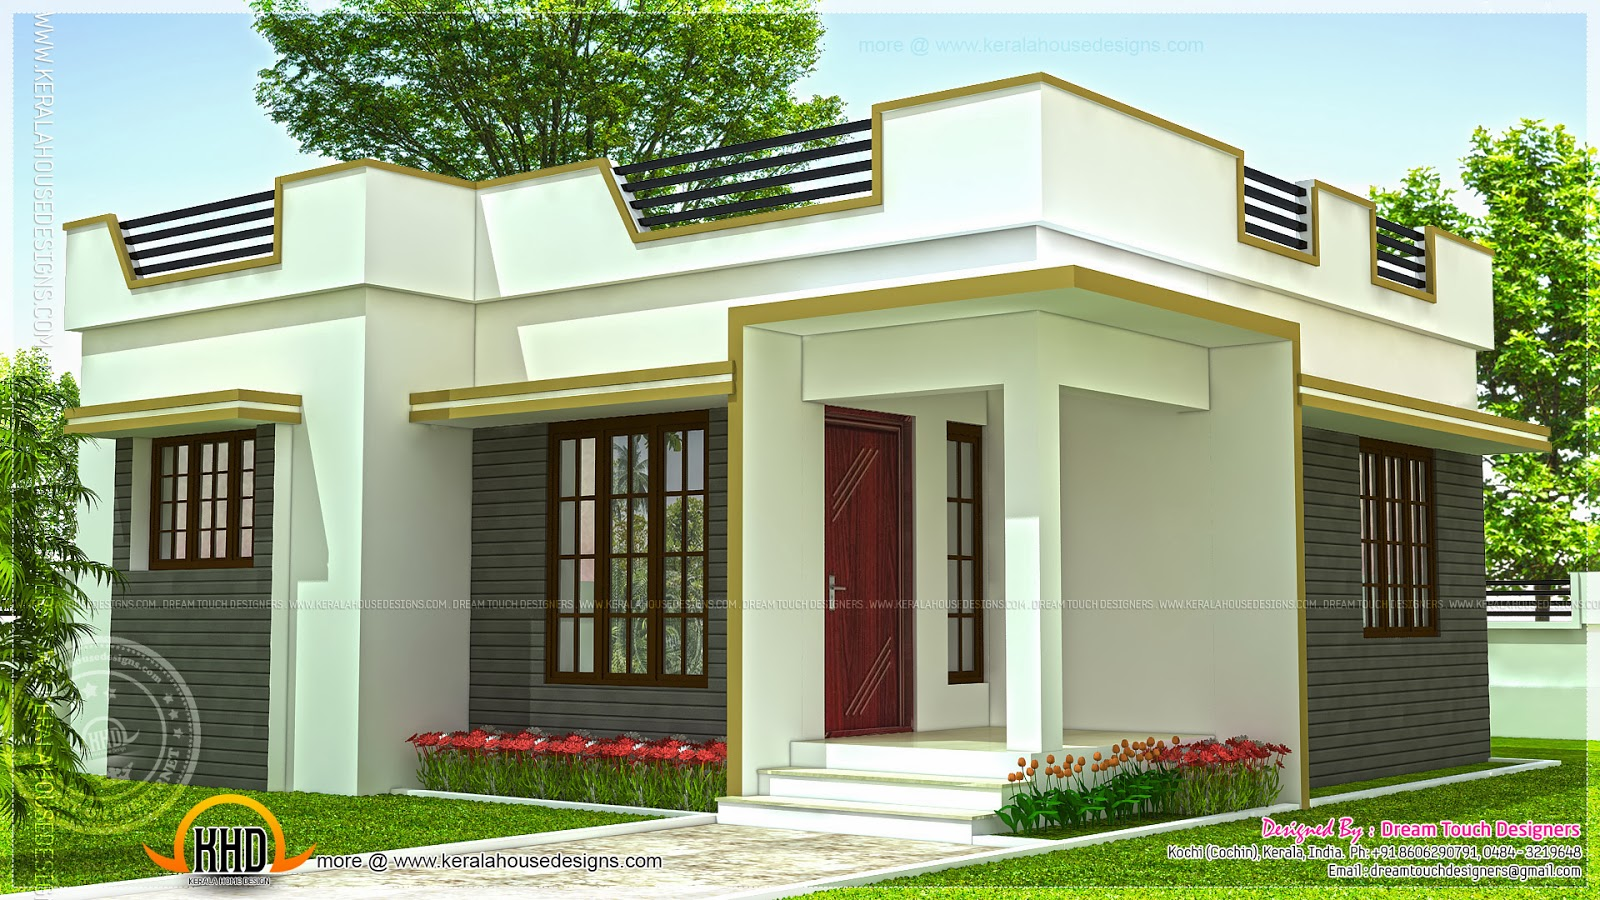 tamil nadu house plans sq ft l 373ca2e589f80deajpg 1600888